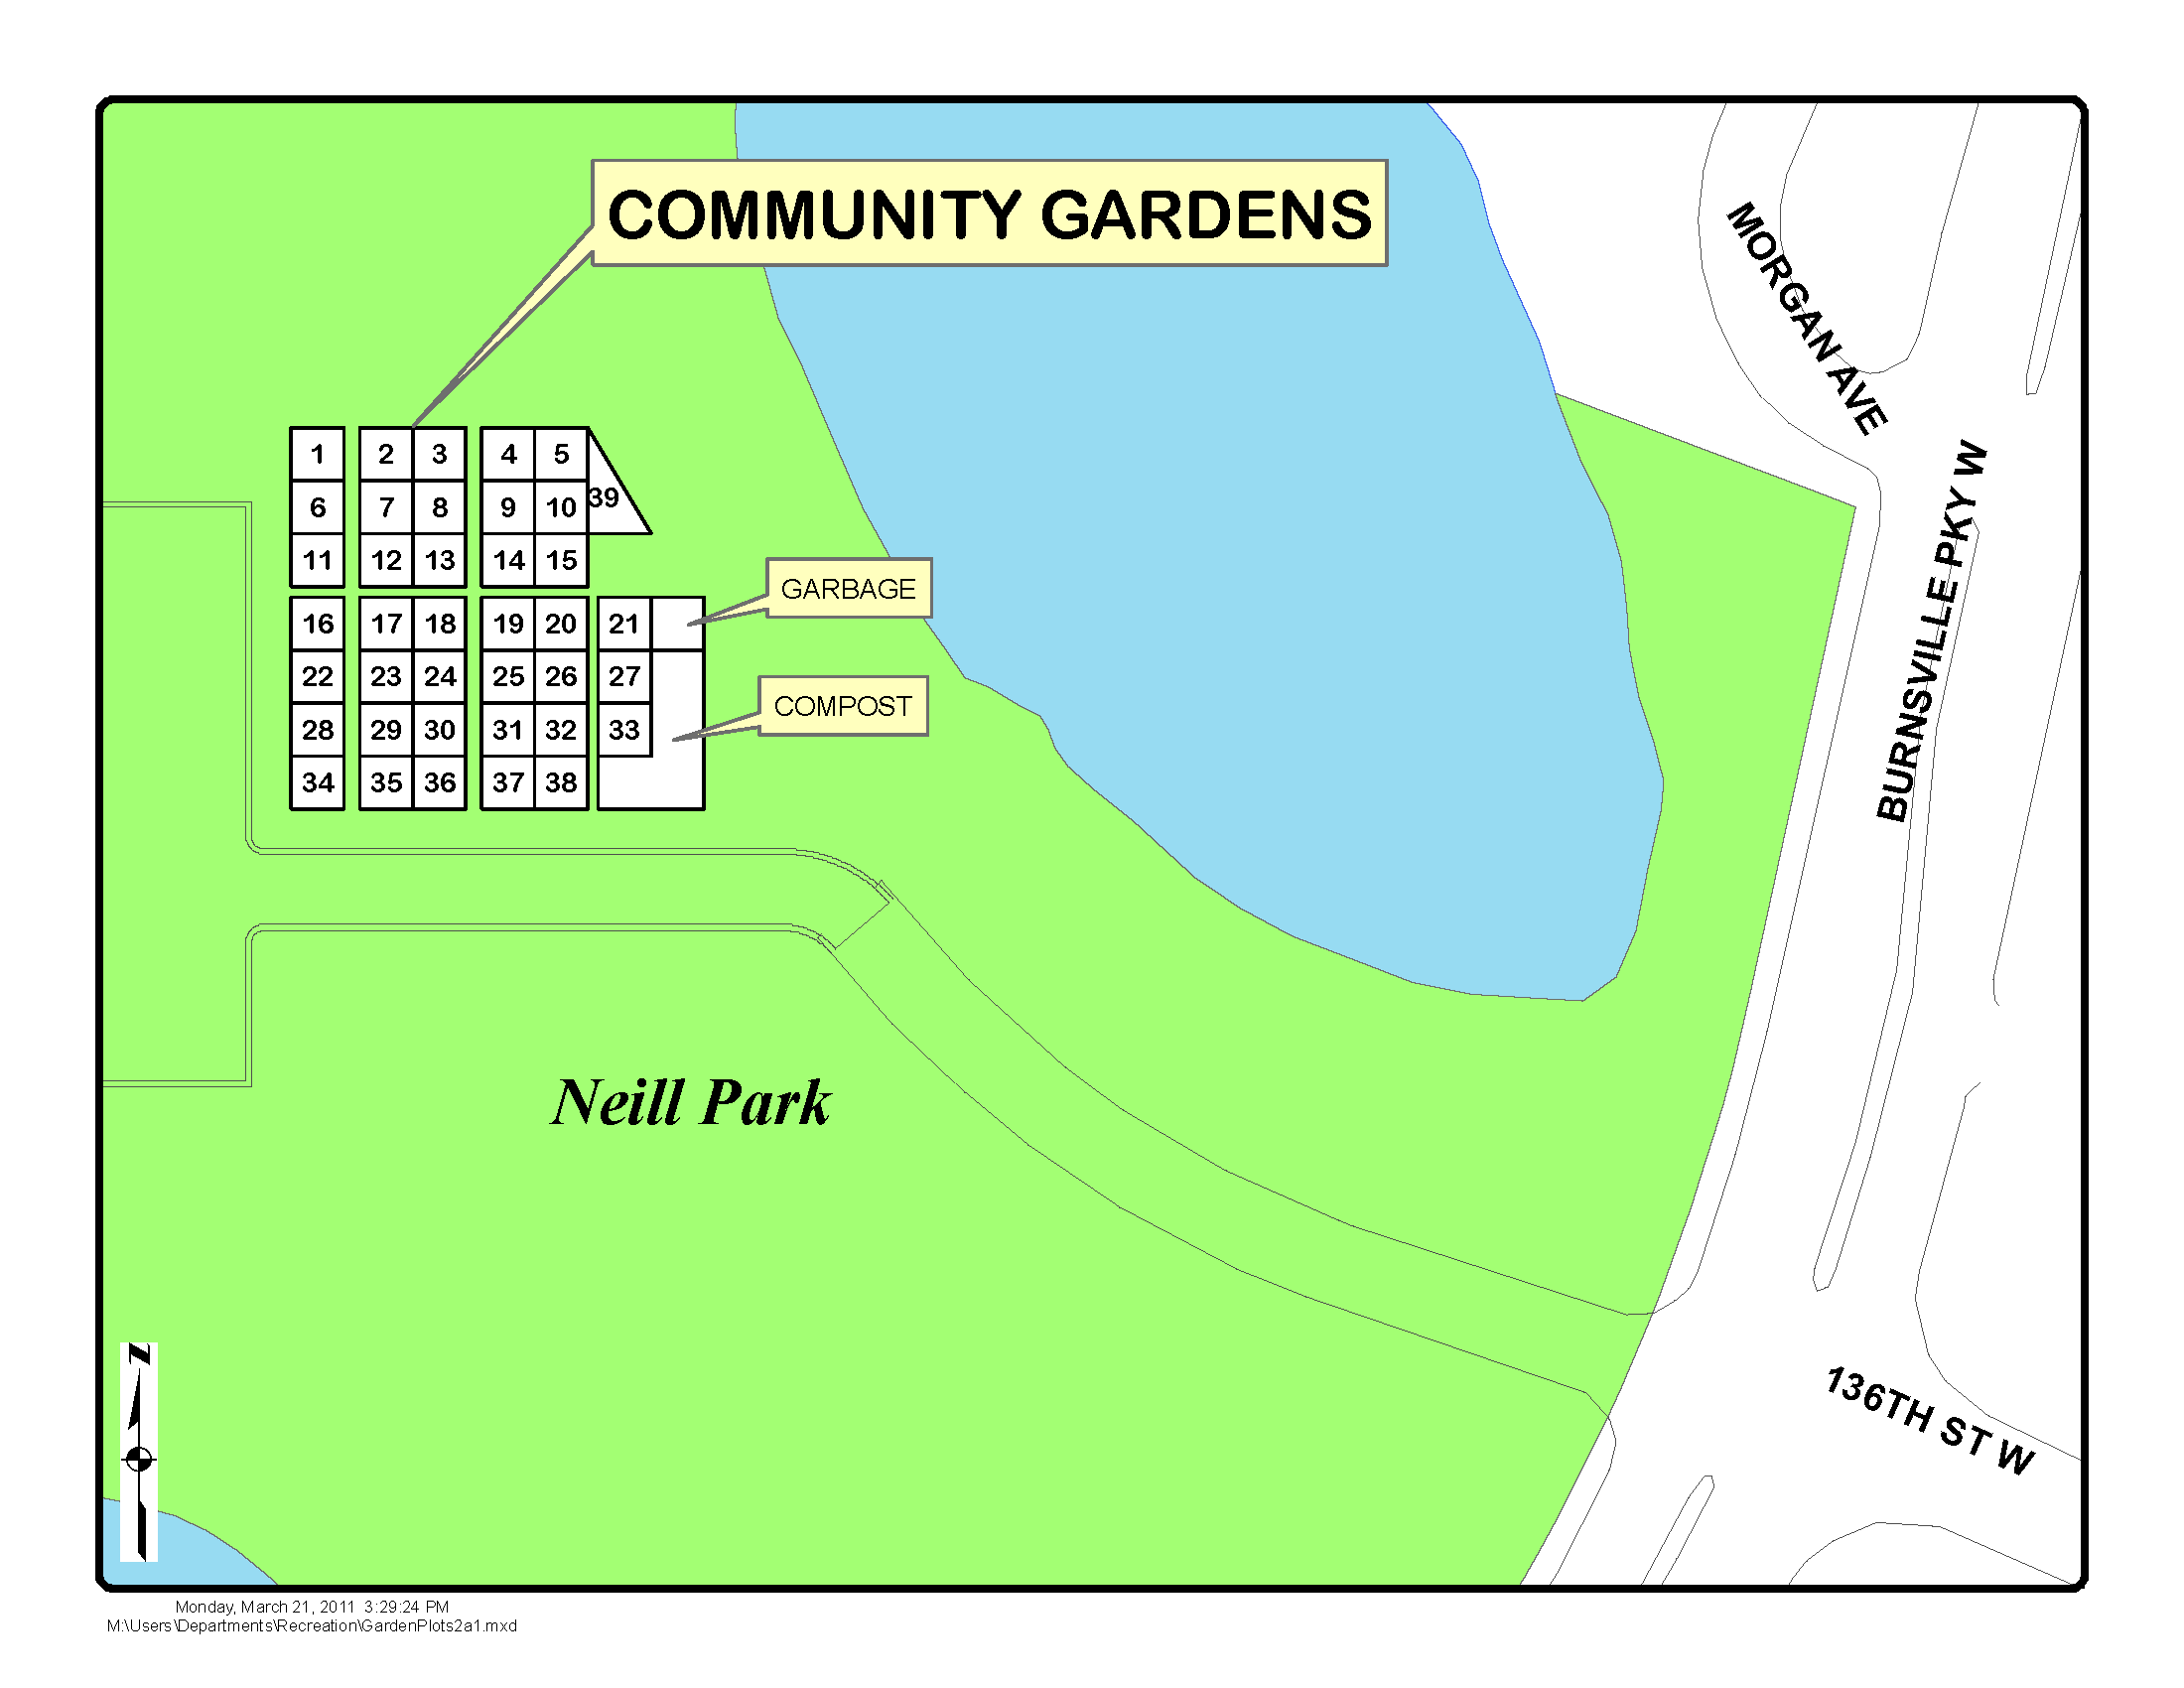 Neill Park Community Garden Map